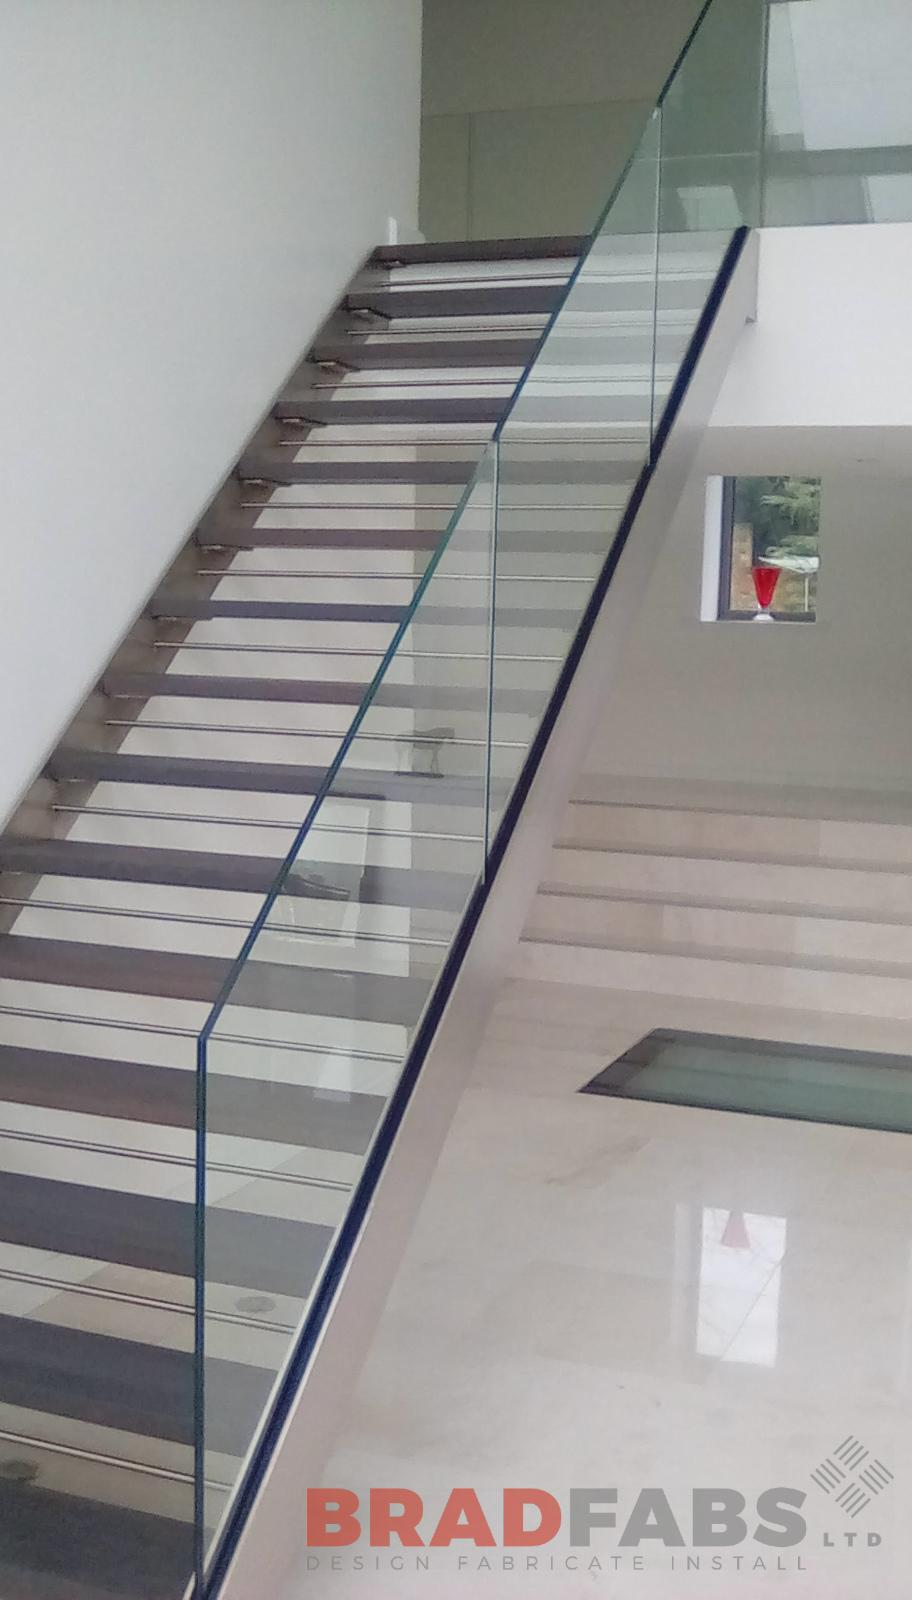 infinity glass balustrade, open treads, straight staircase, Bradfabs UK